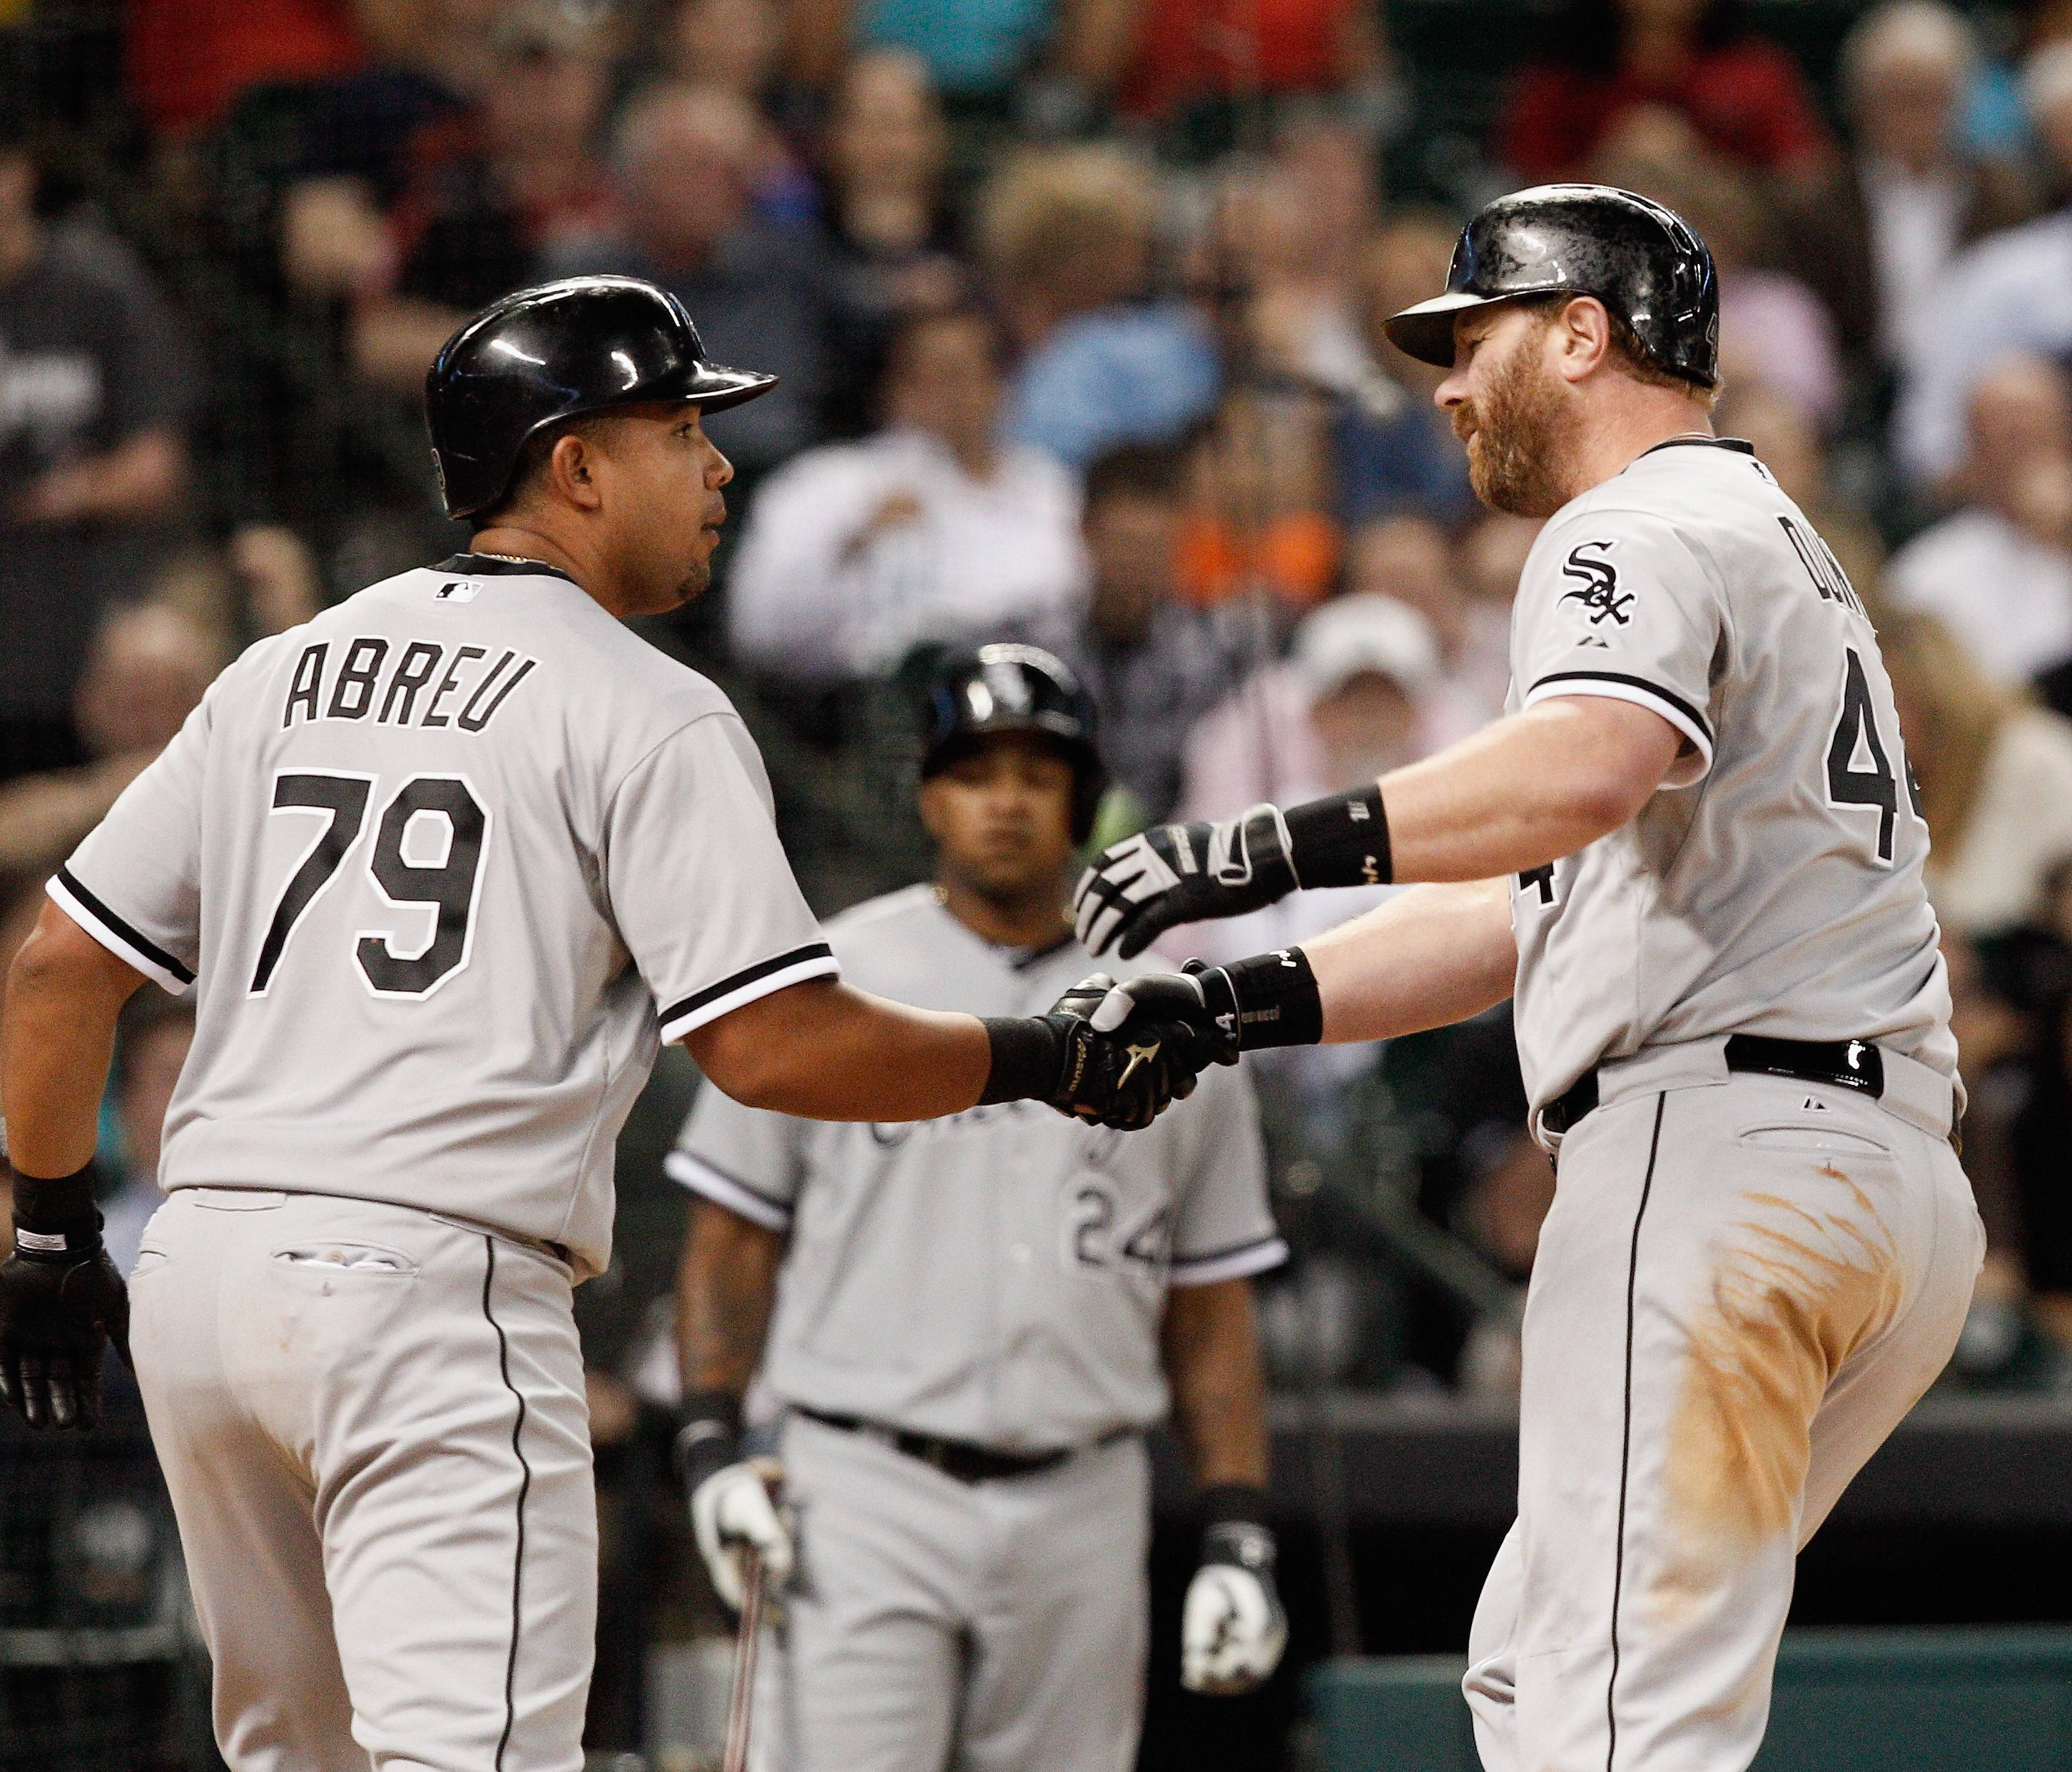 Chicago White Sox's Adam Dunn, right, is congratulated by teammate Jose Abreu, right, after hitting a three-run home run in the sixth inning against the Houston Astros during a baseball game on Friday, May 16, 2014, in Houston. (AP Photo/Bob Levey)